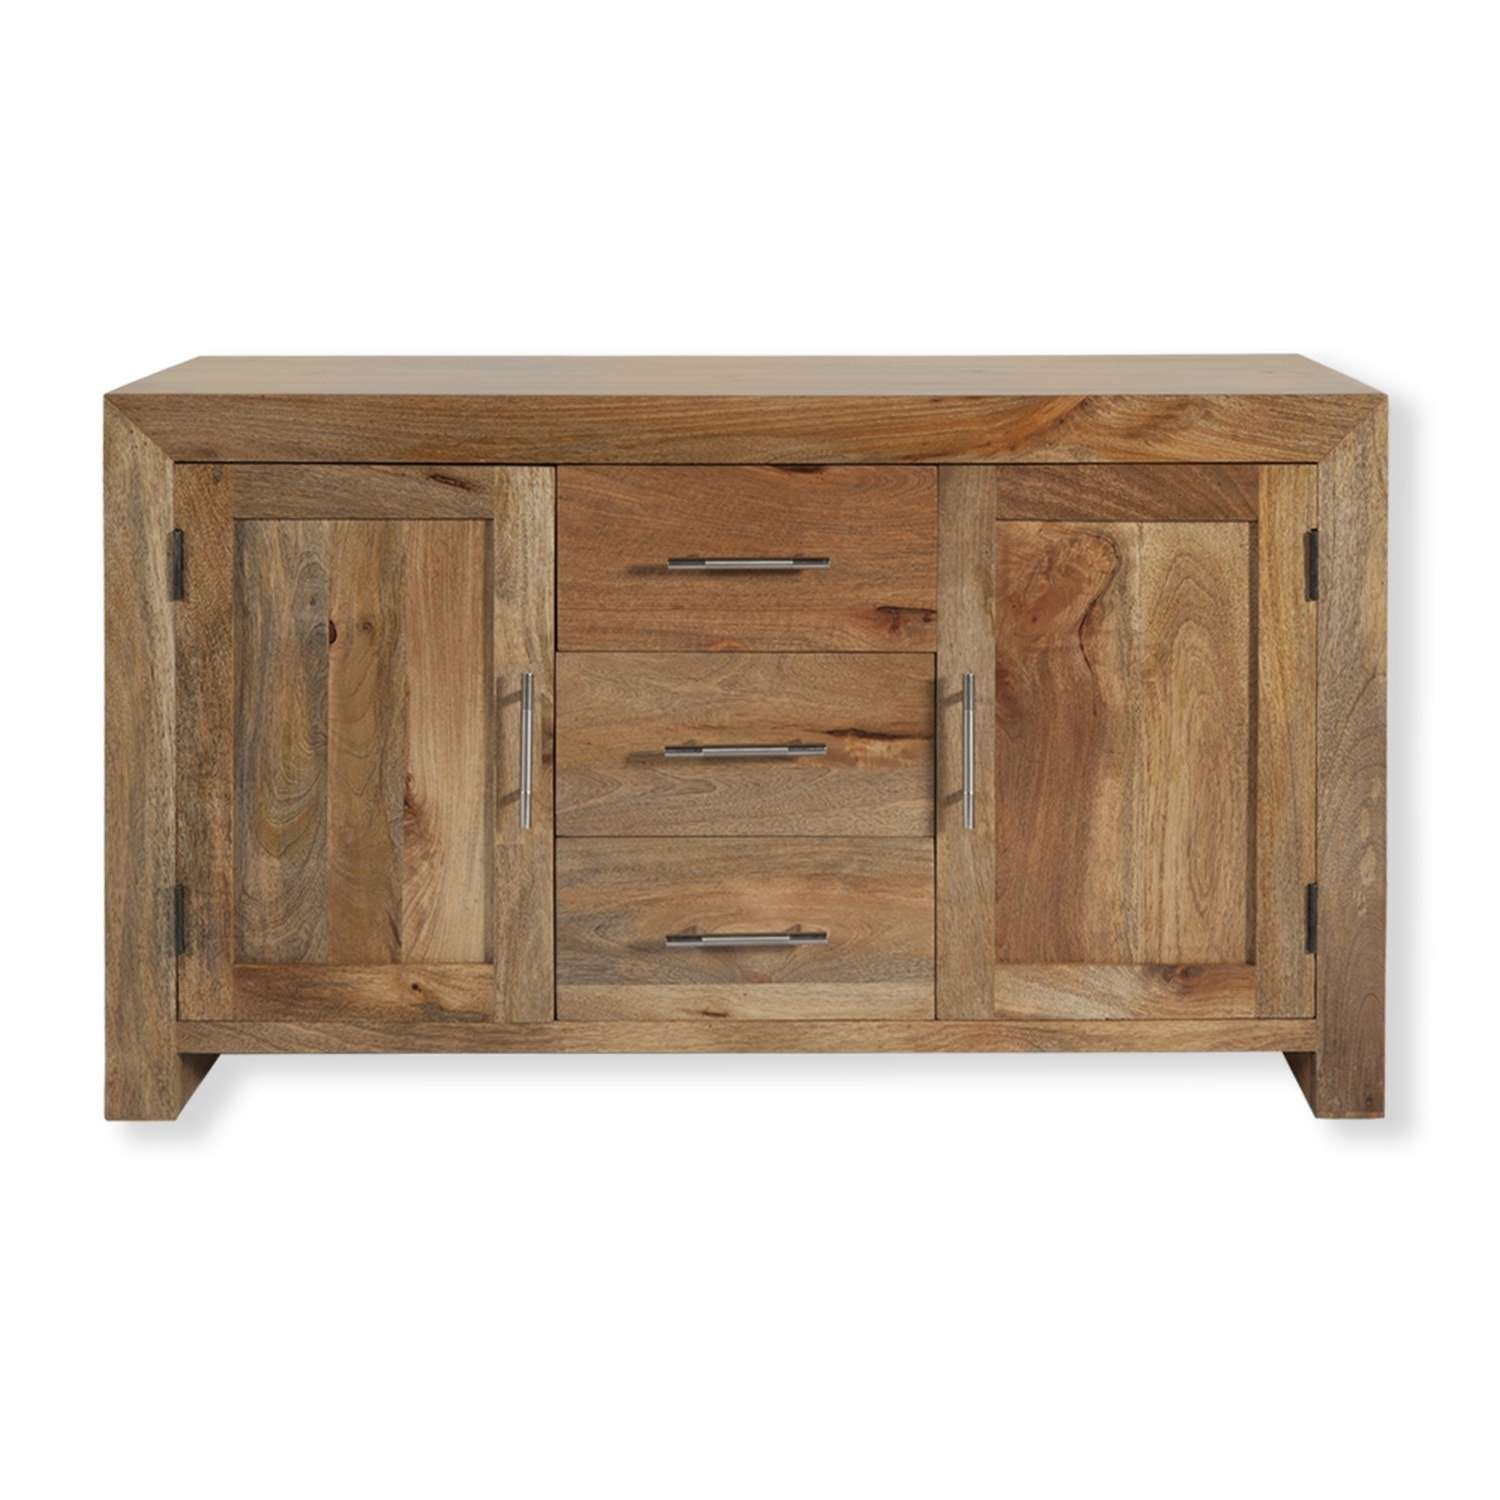 Sideboards & Cabinets For Quirky Sideboards (View 17 of 20)